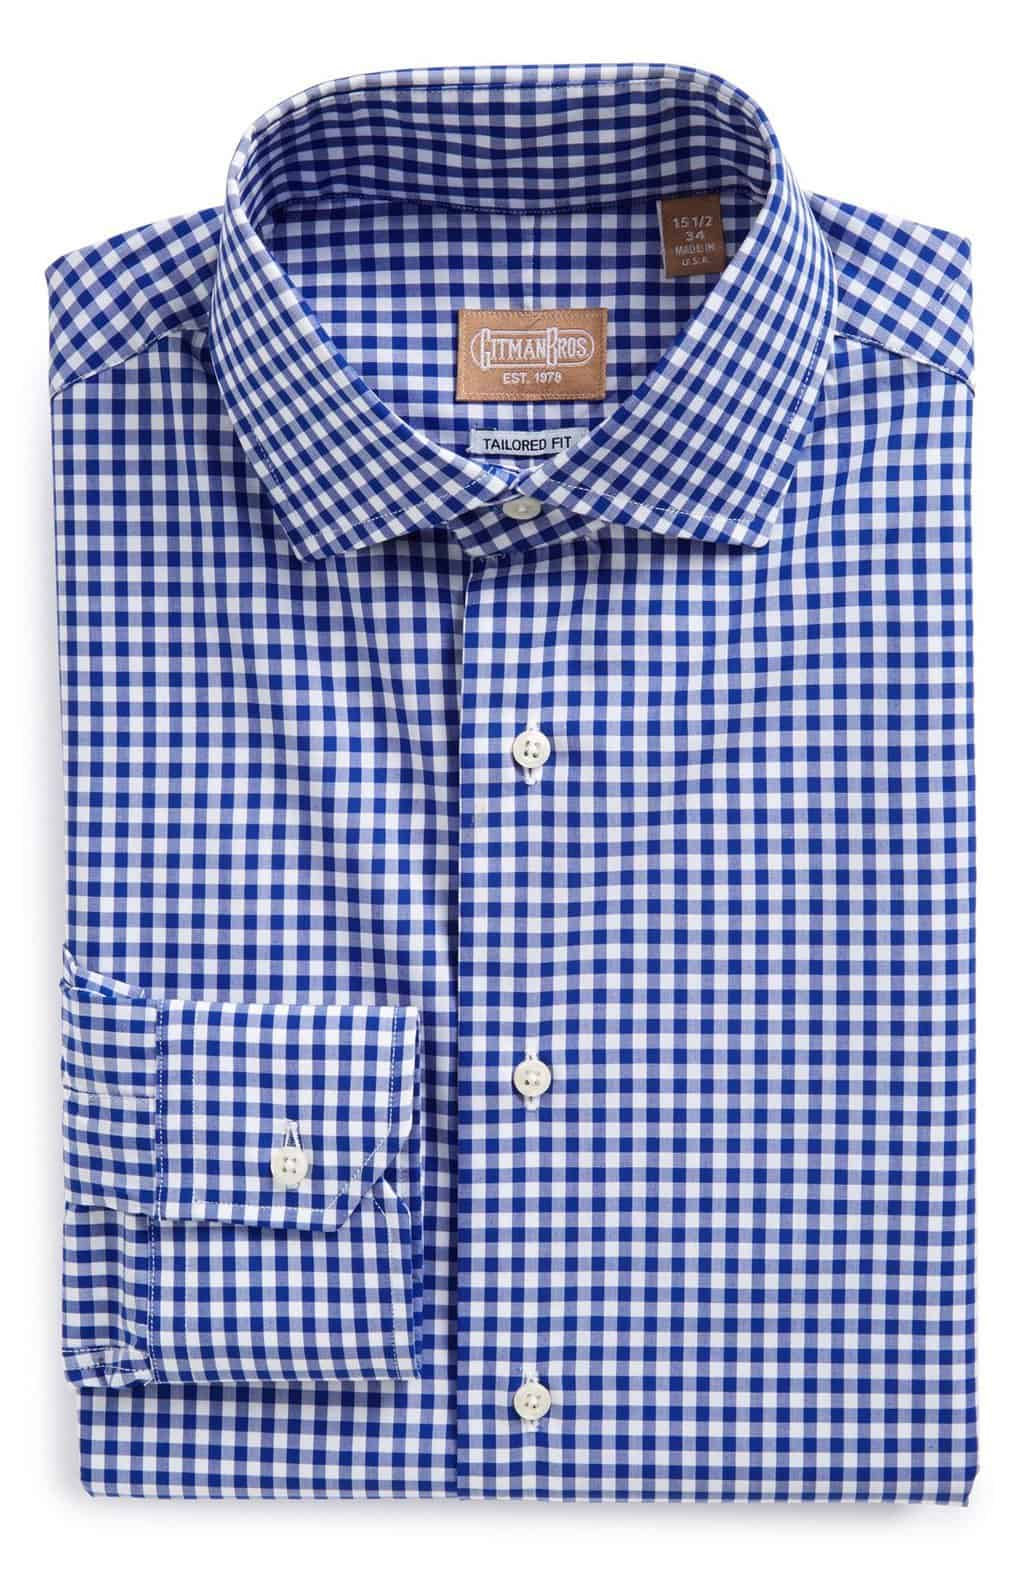 American Made Mens Luxury Gifts - Gitman Dress Shirt